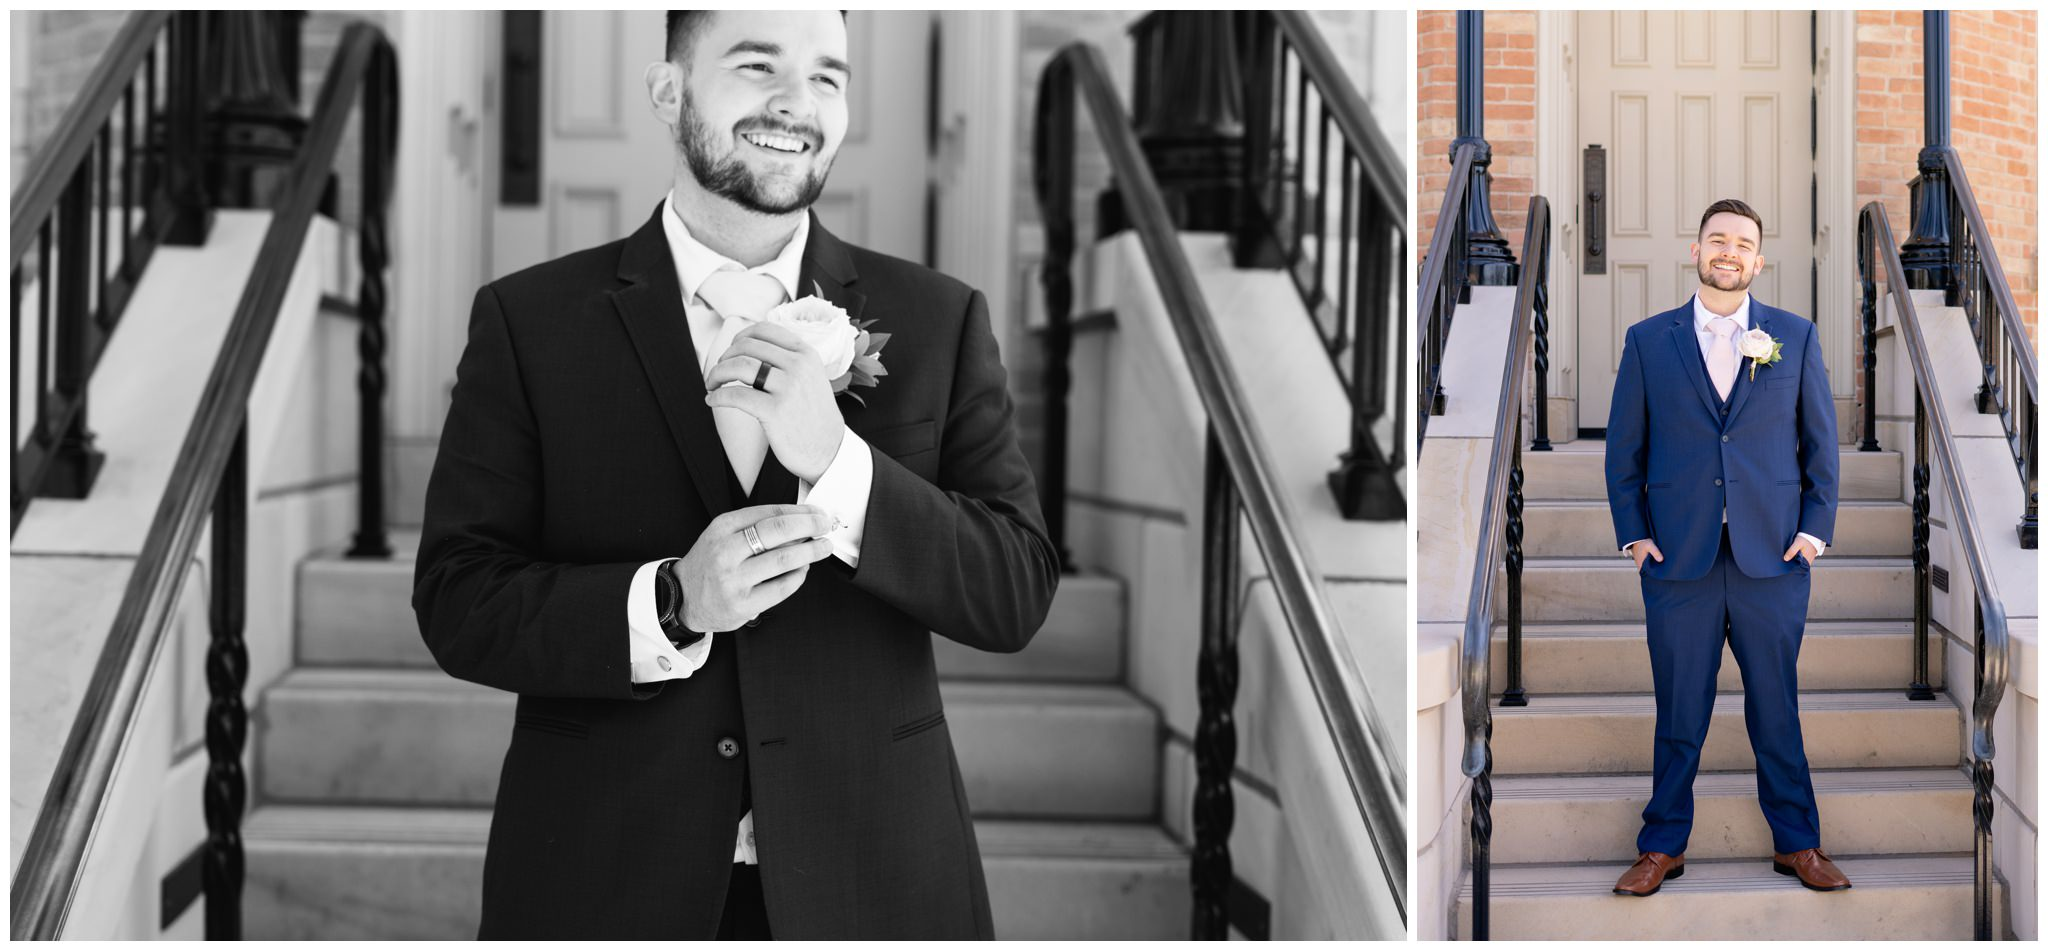 Groom Portraits at the provo temple in utah